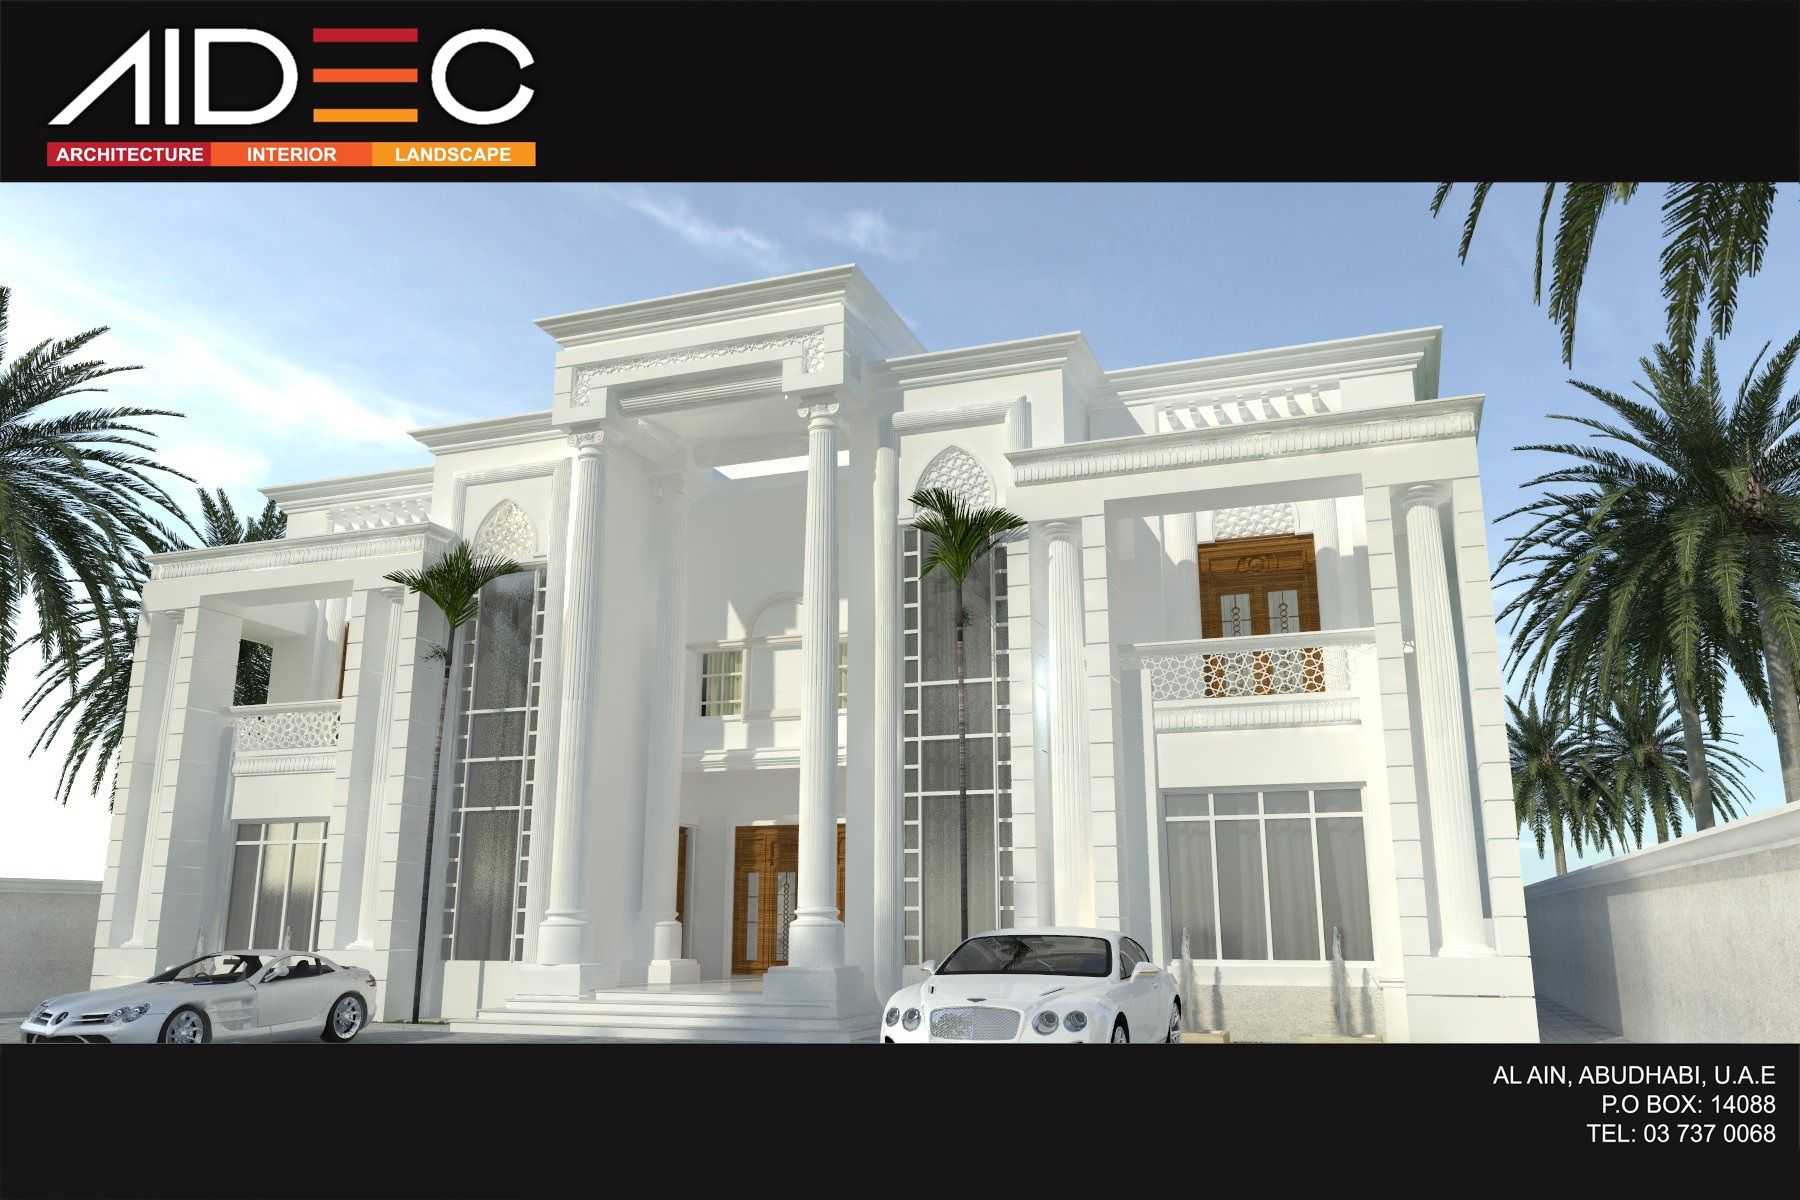 Residence villa romanian design abu dhabi uae aidec for Modern house uae